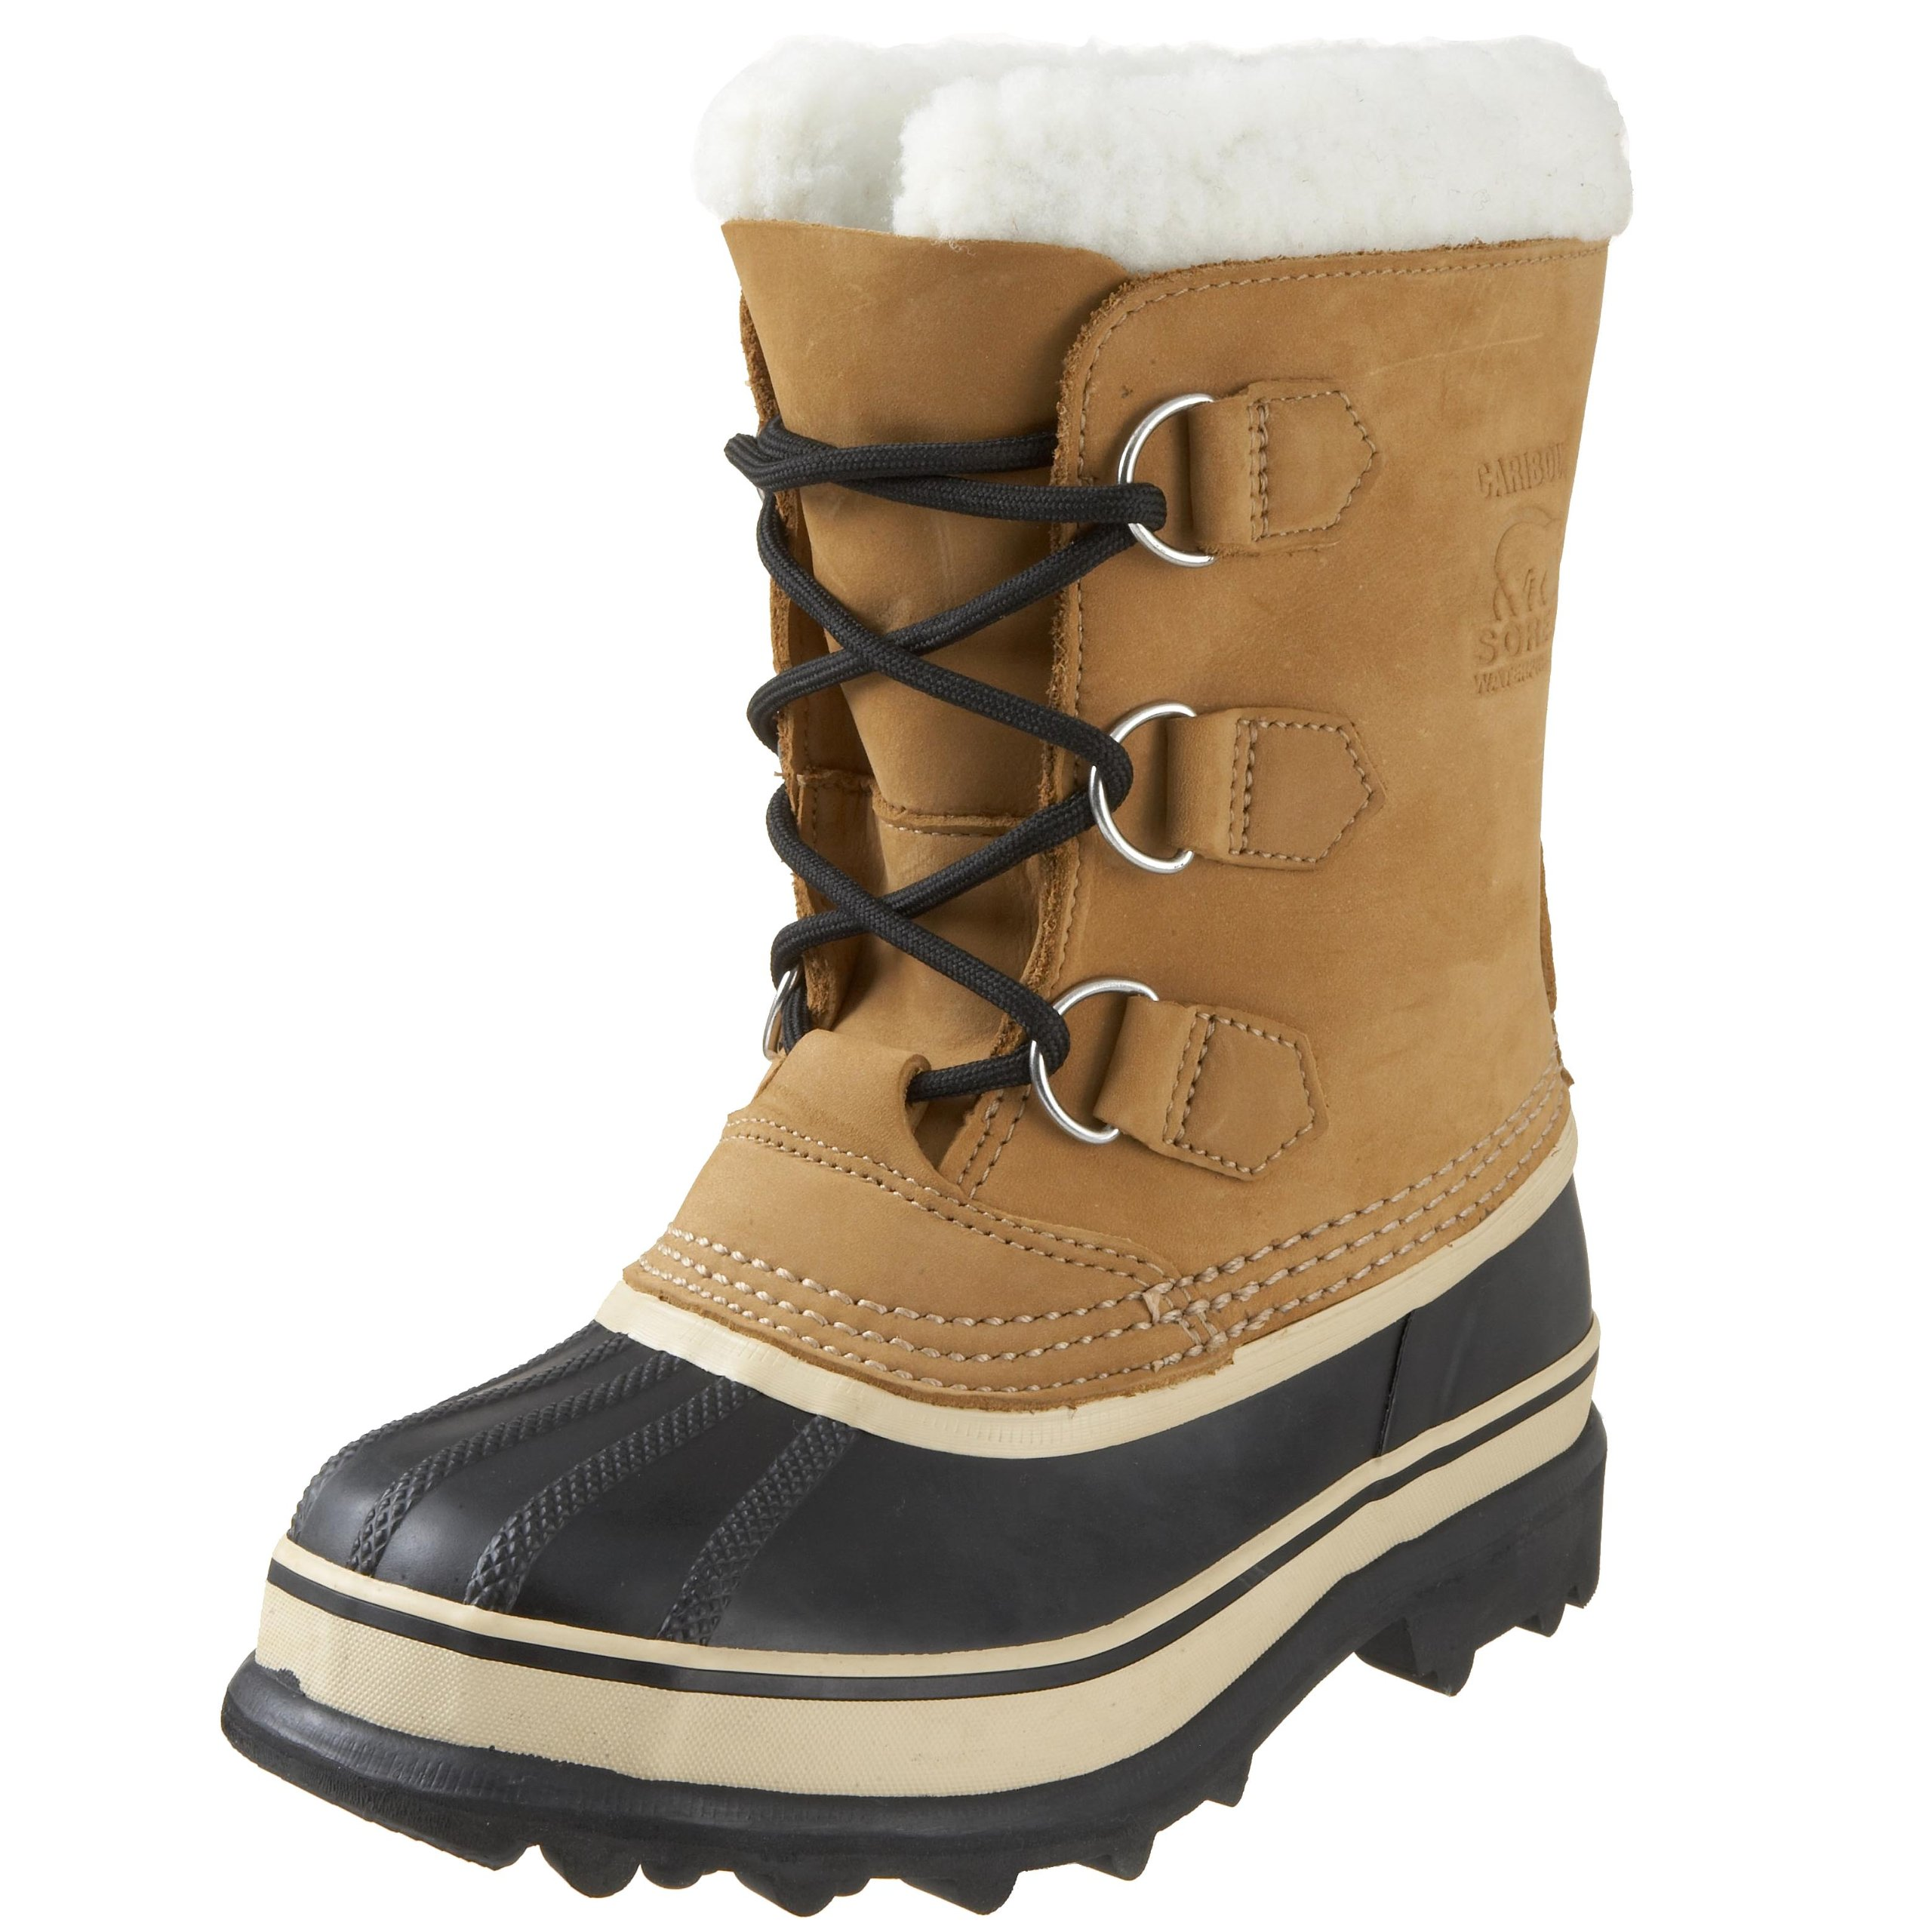 Sorel Caribou 1000 - Winter Boot (Little Kid/Big Kid),Buff,6 M US Big Kid